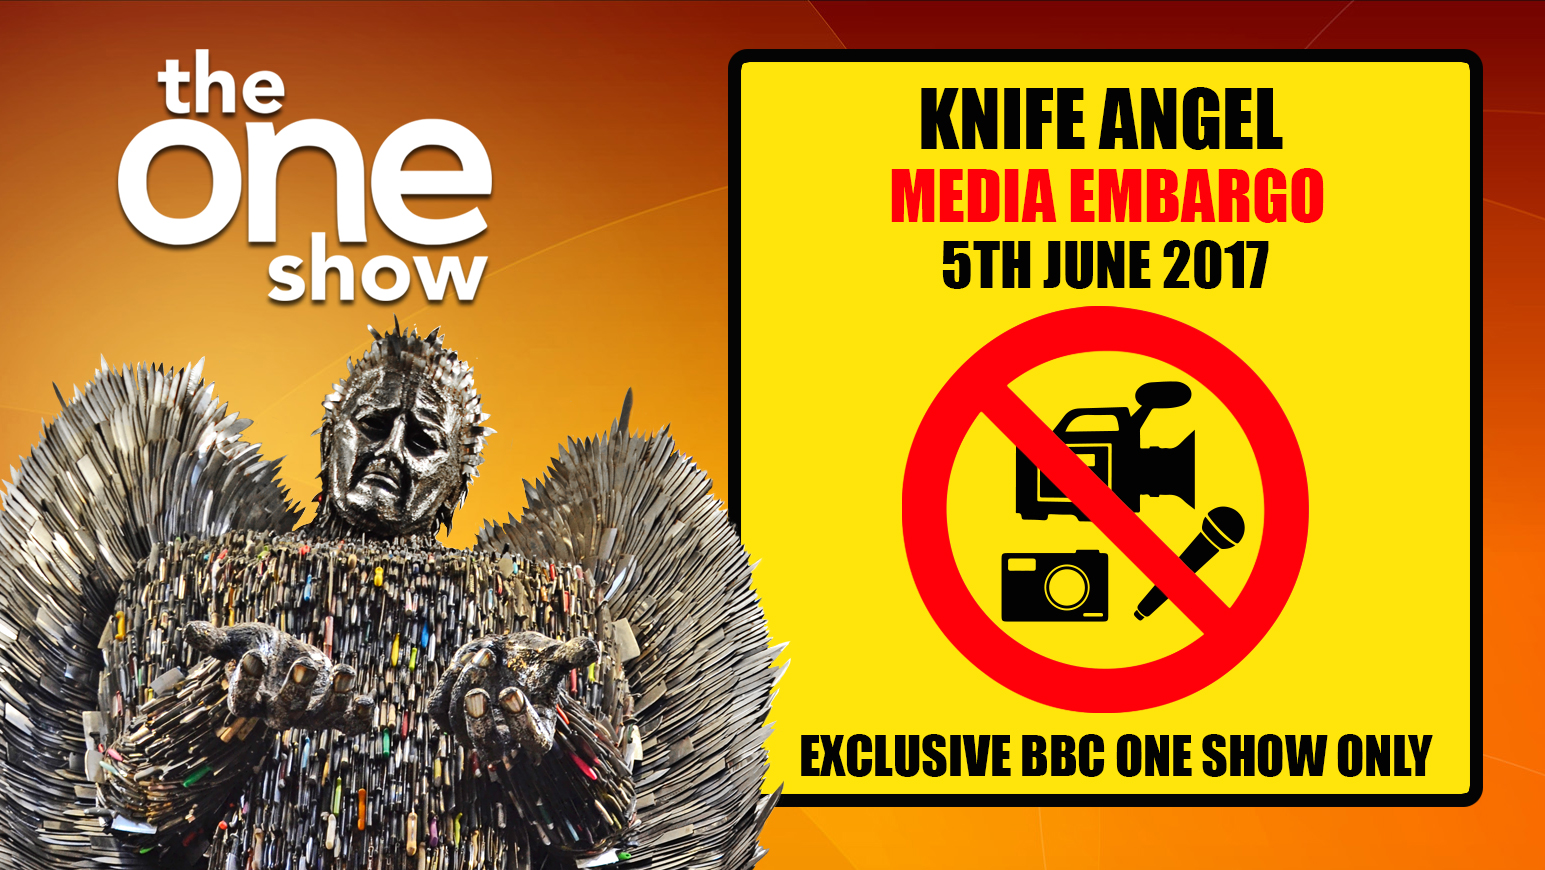 knife angel embargo